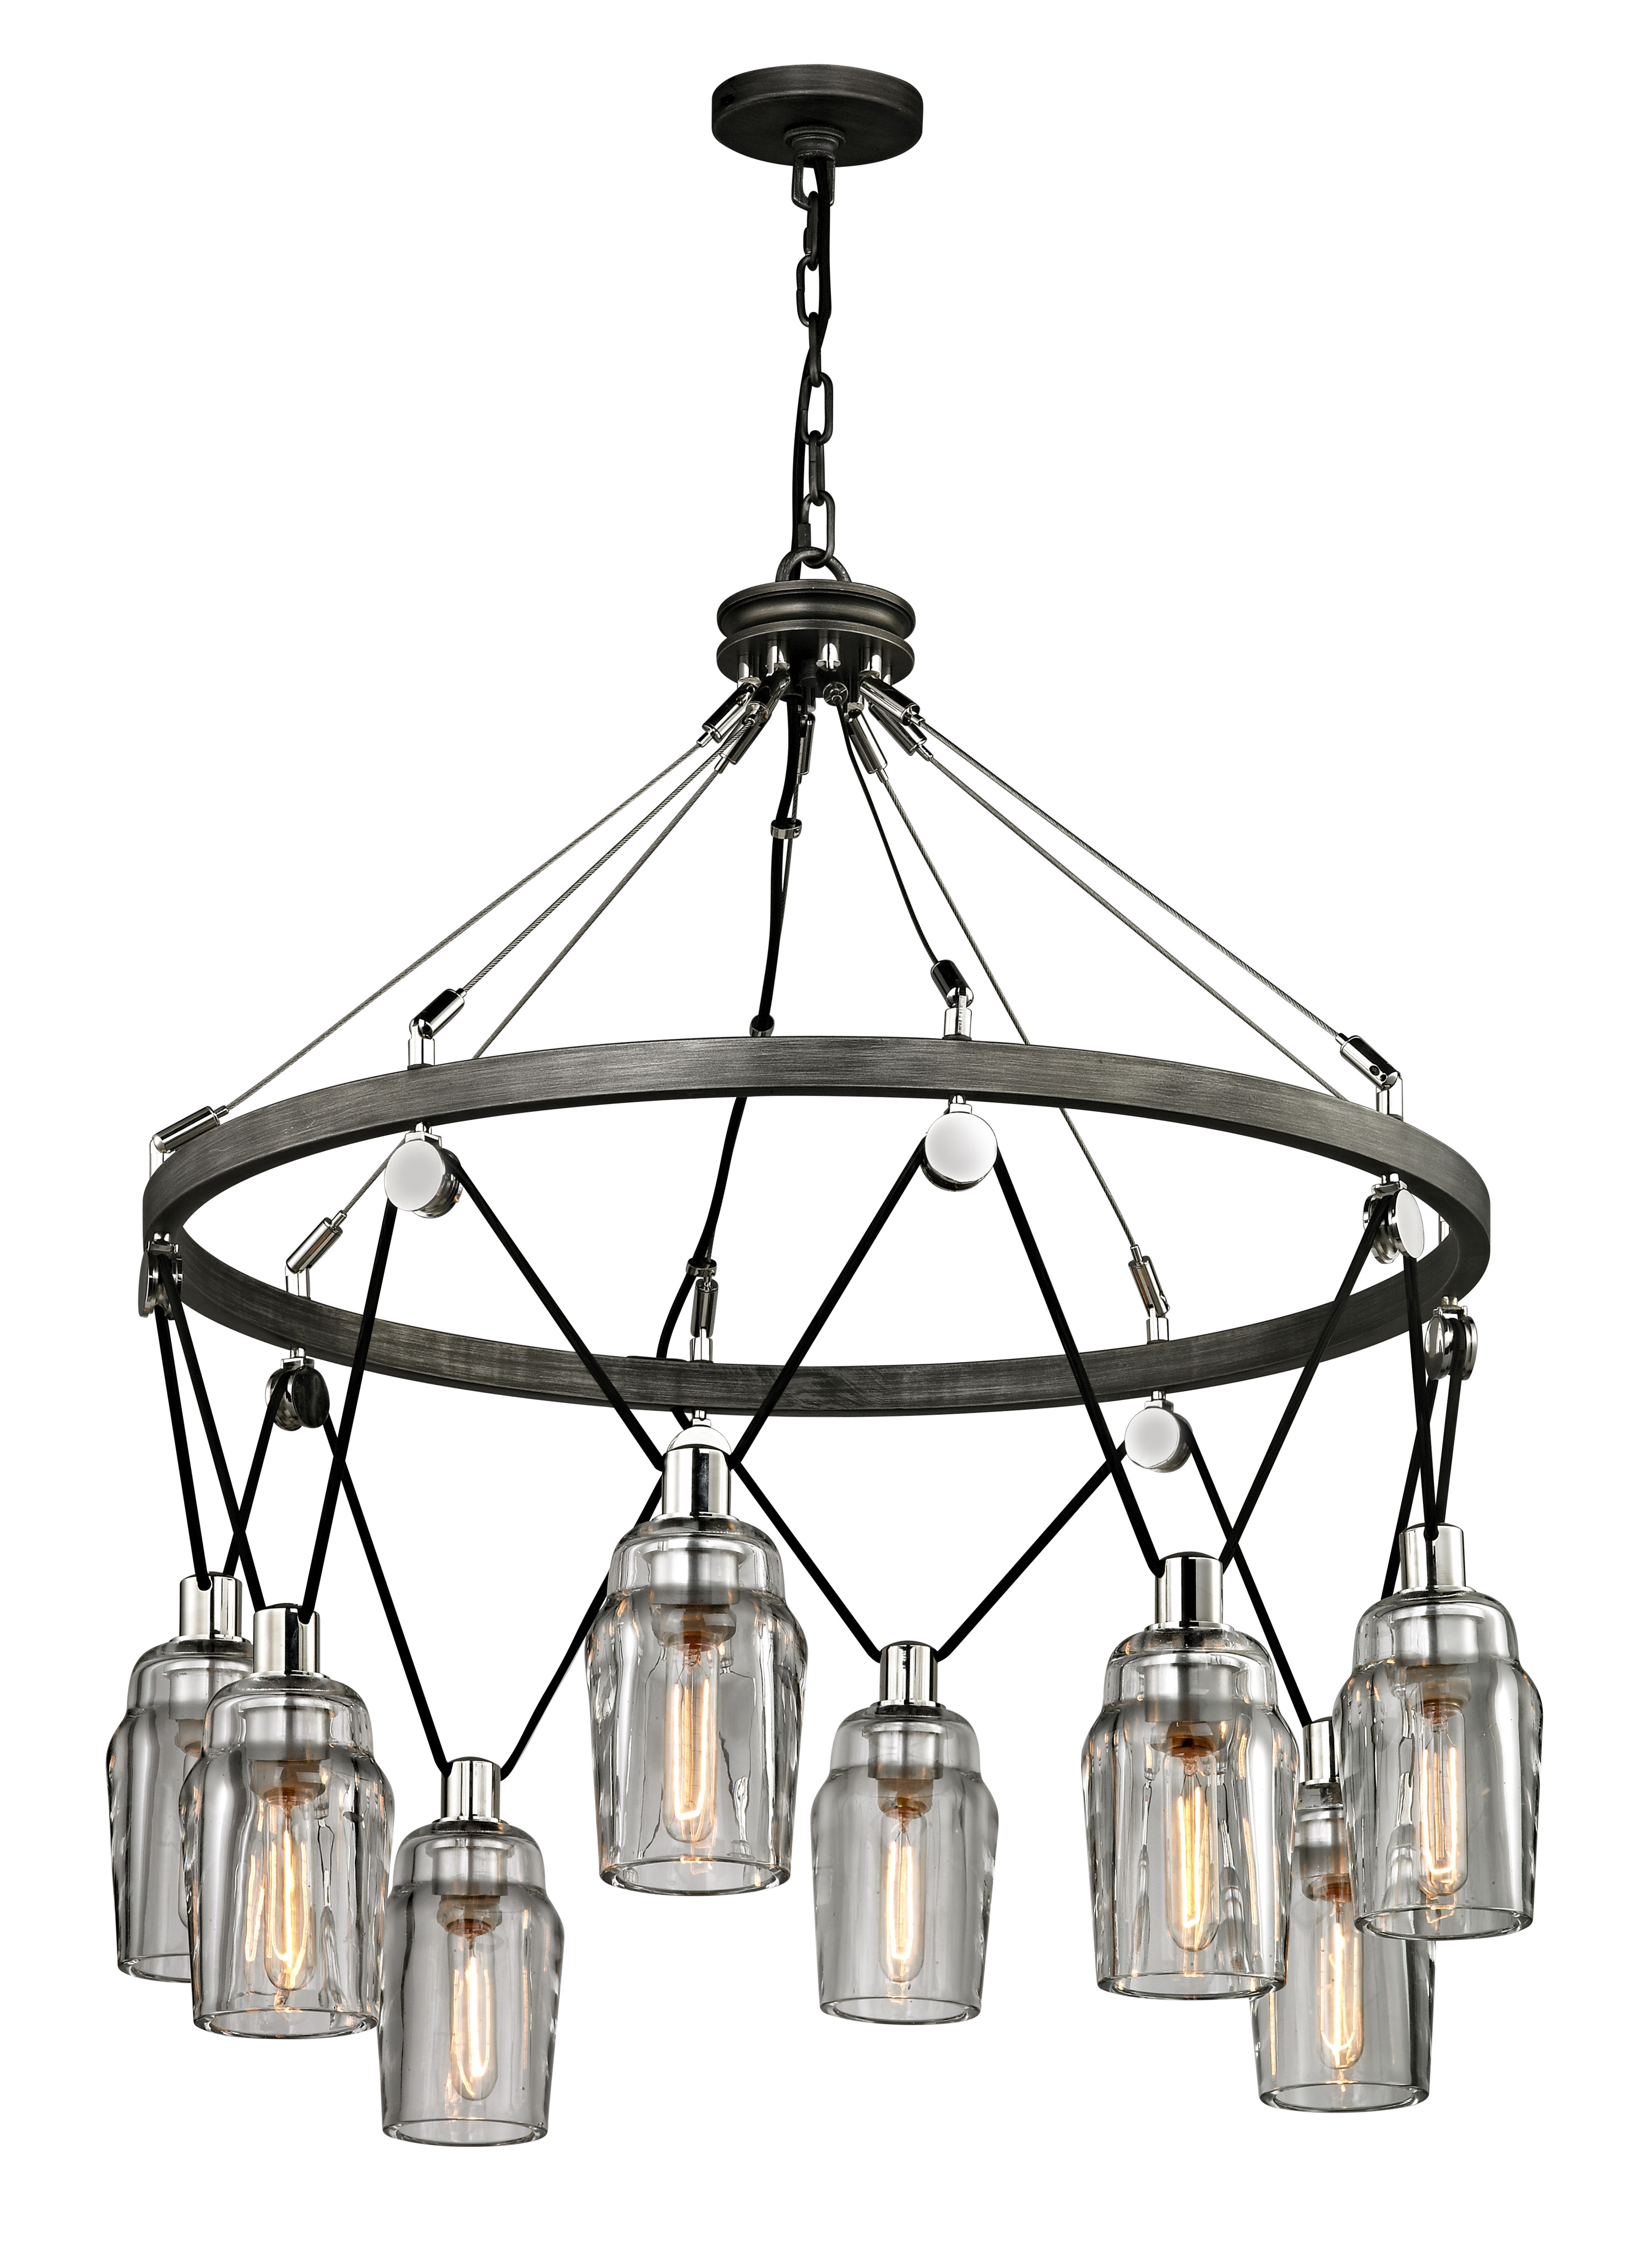 troy lighting presents new collections that epitomize their brand u0026 39 s dna